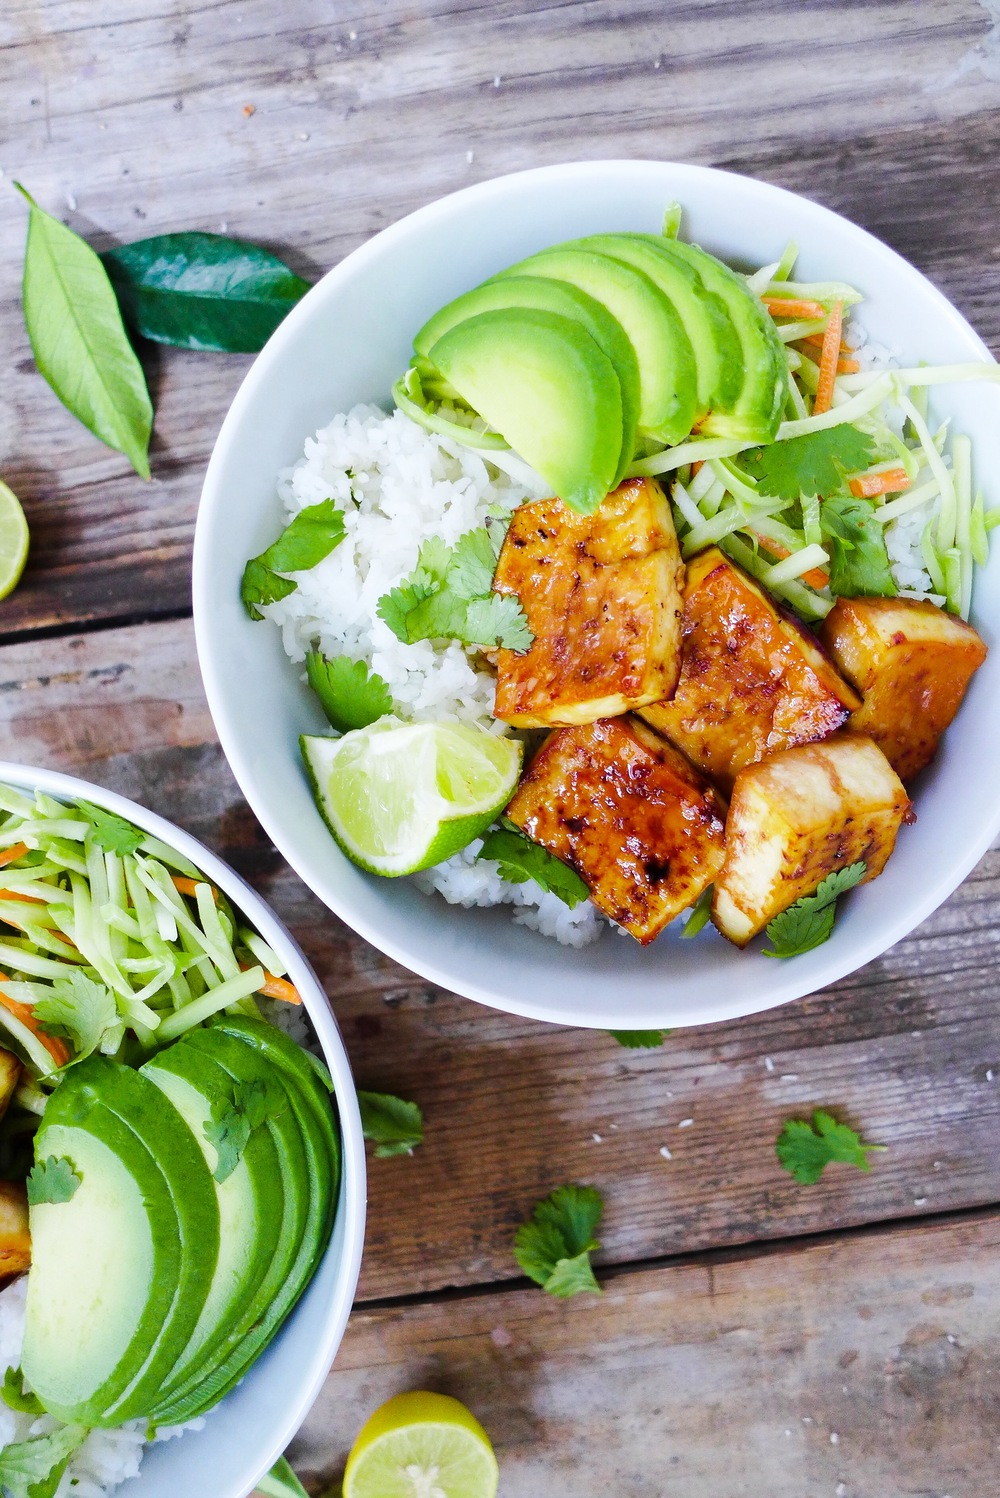 teriyaki-tofu-bowl-cilantro-lime-rice-vegan.jpg